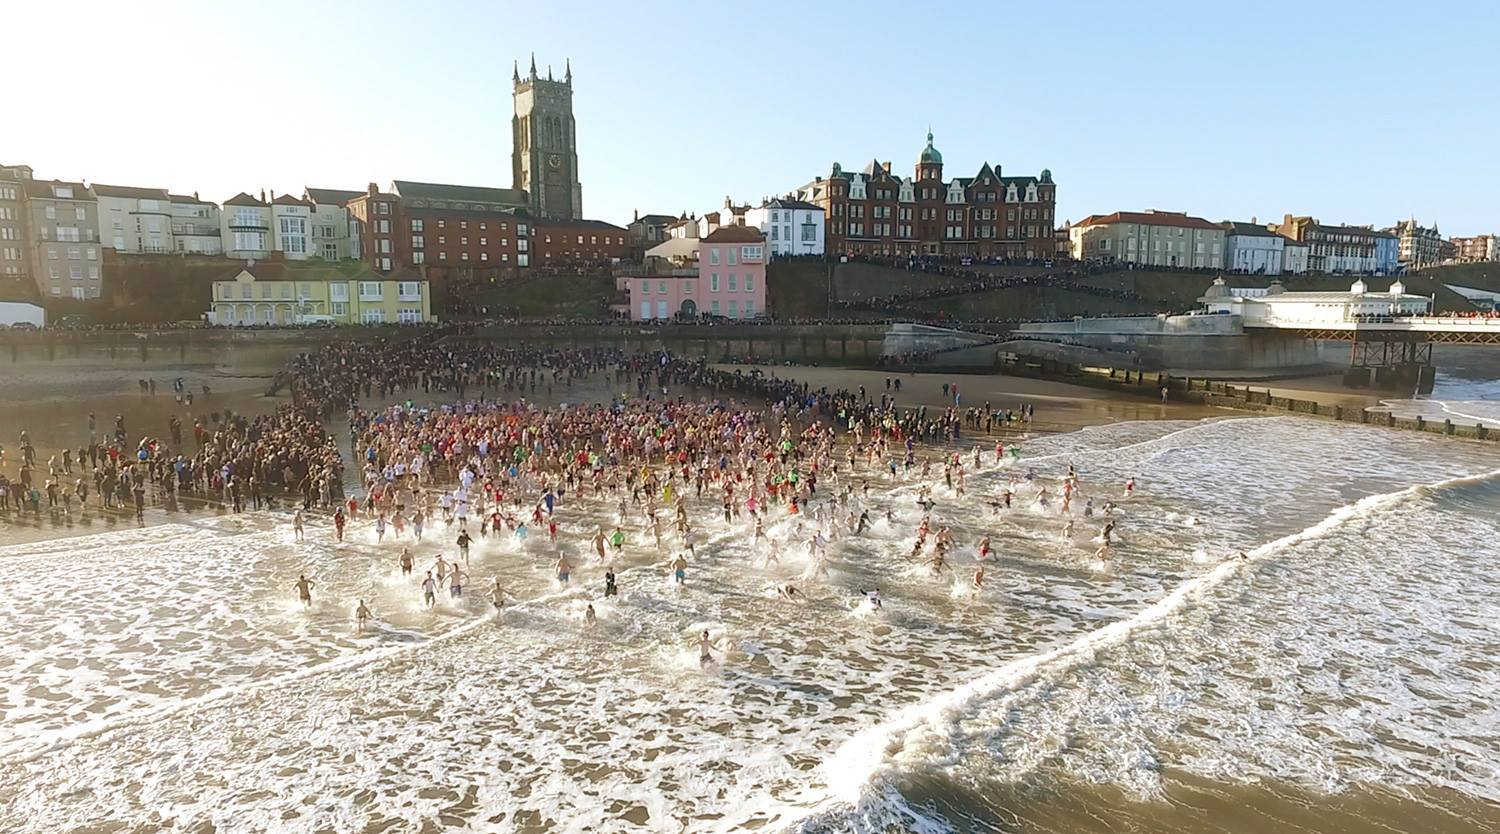 outdoor-swimming-society-features-festival-swim-list-cromer